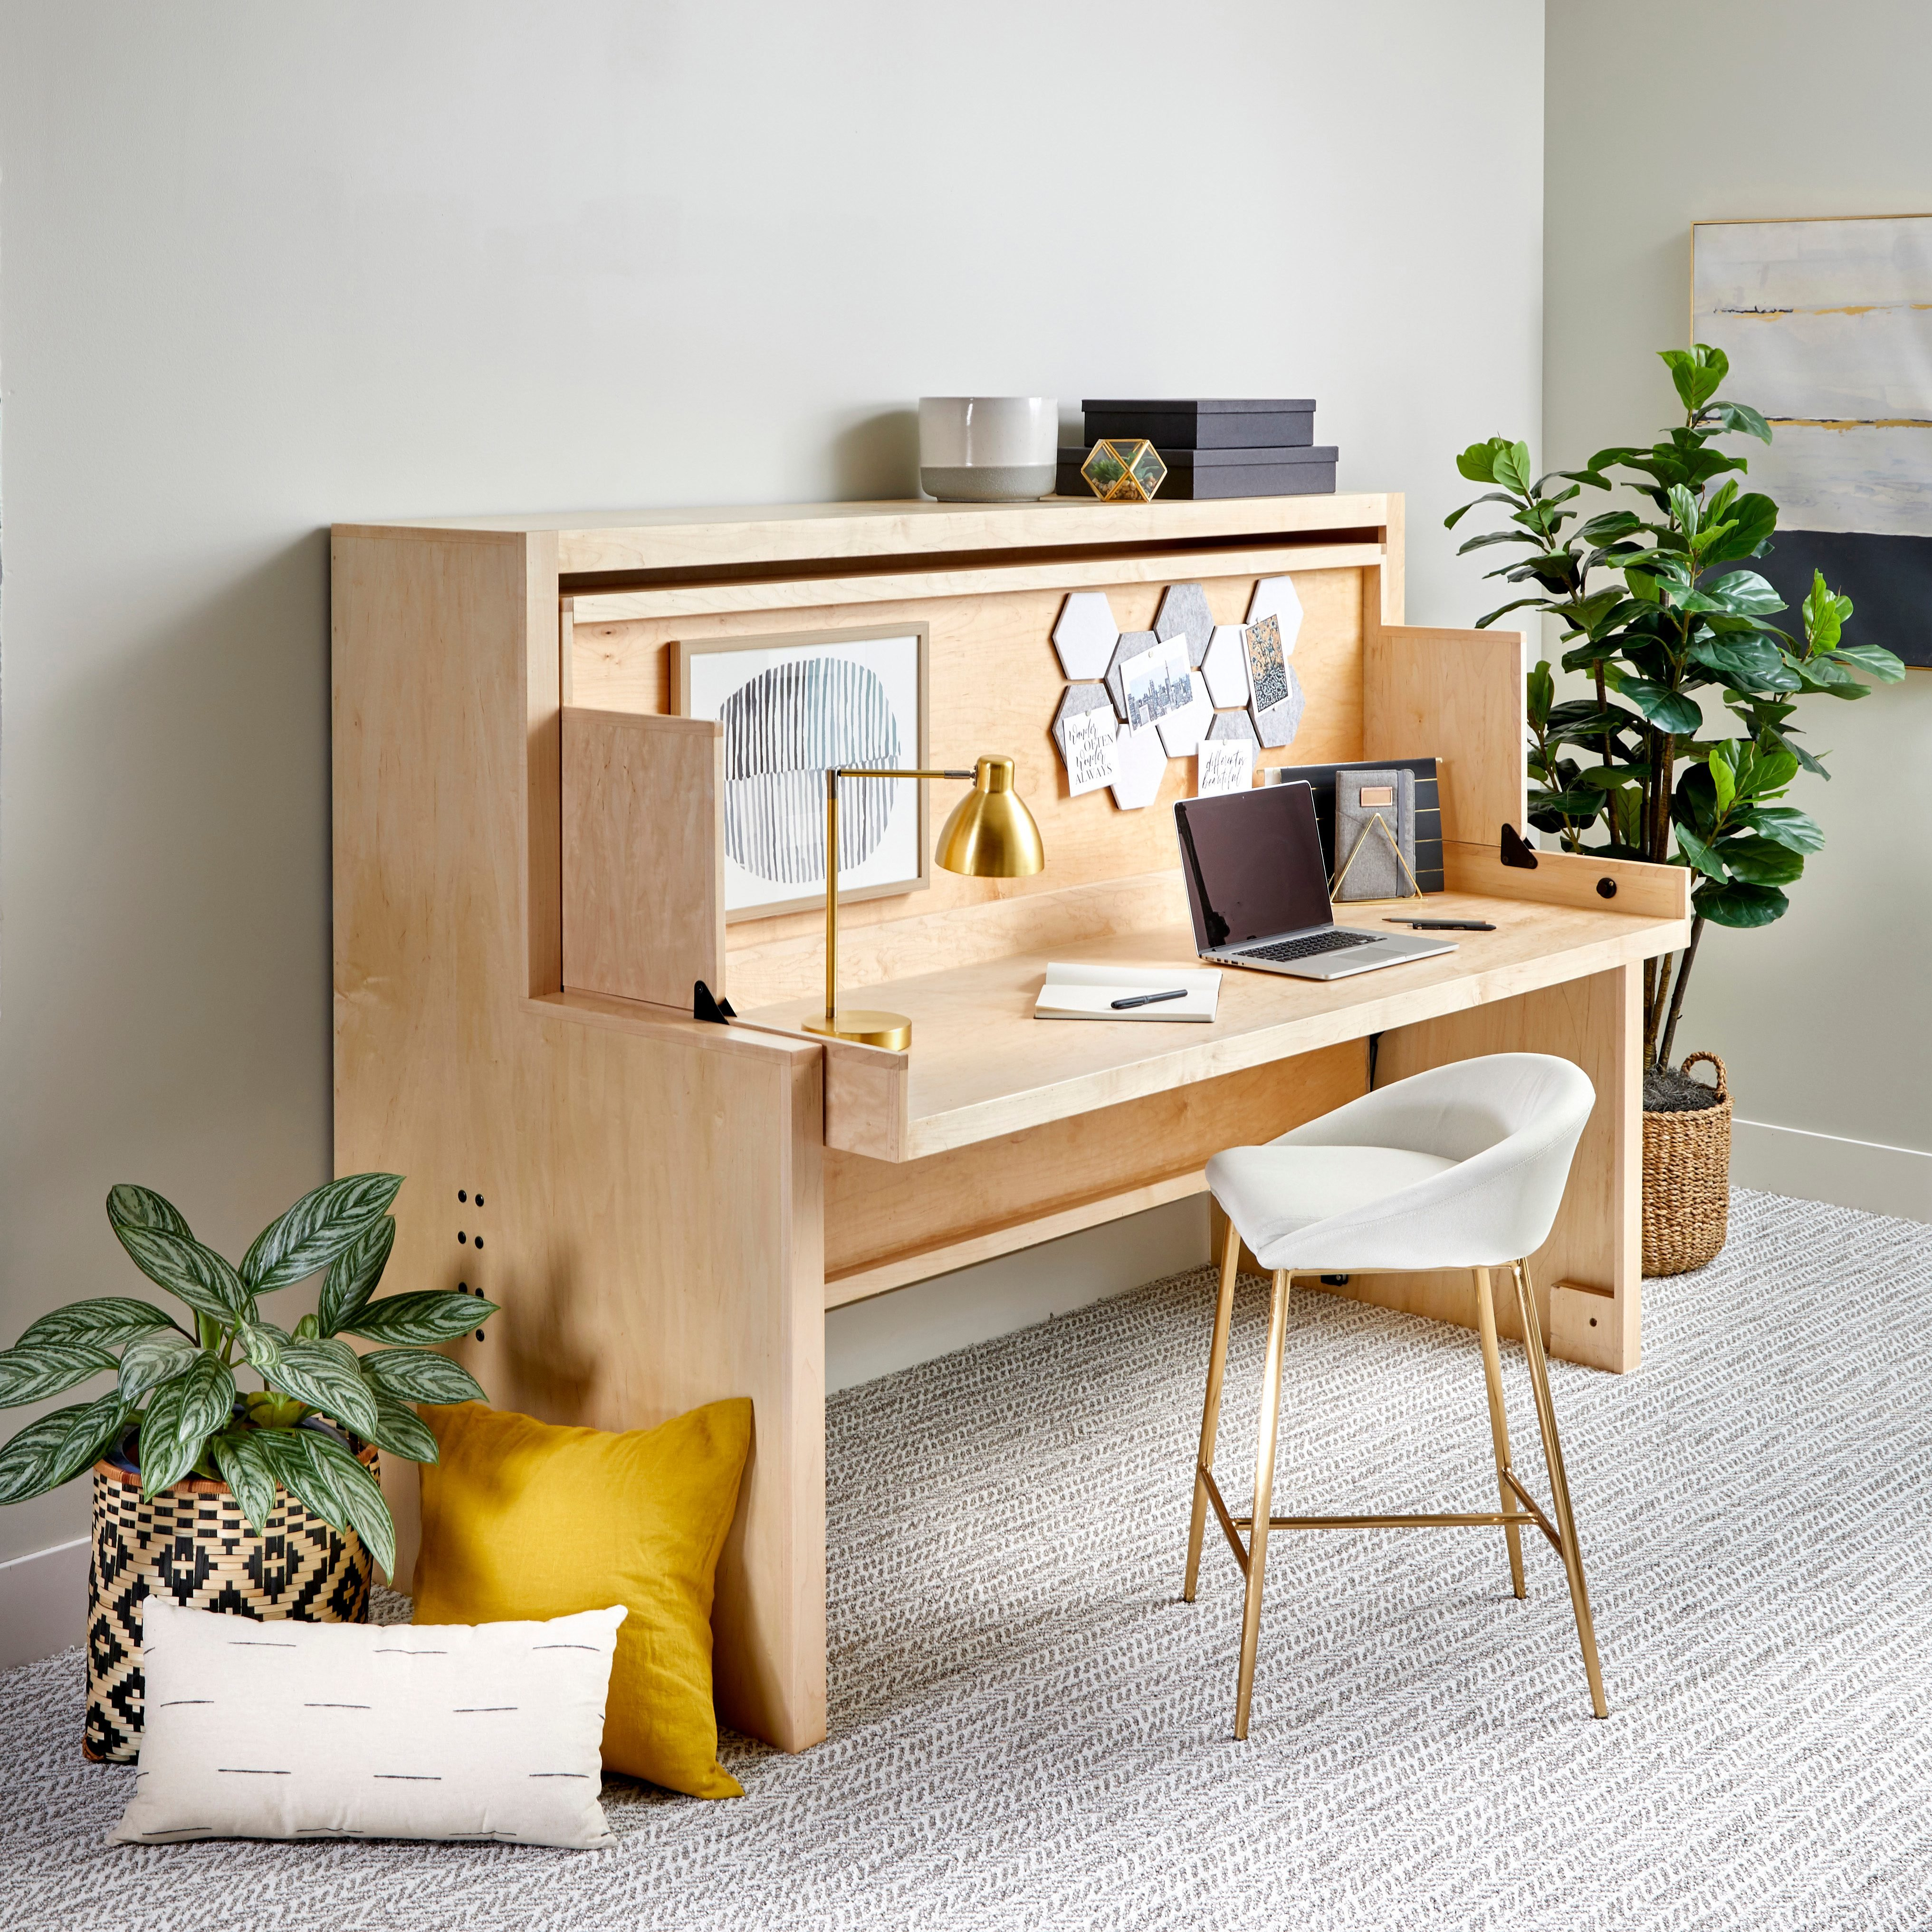 See Family Handyman's Murphy Bed Desk in Action